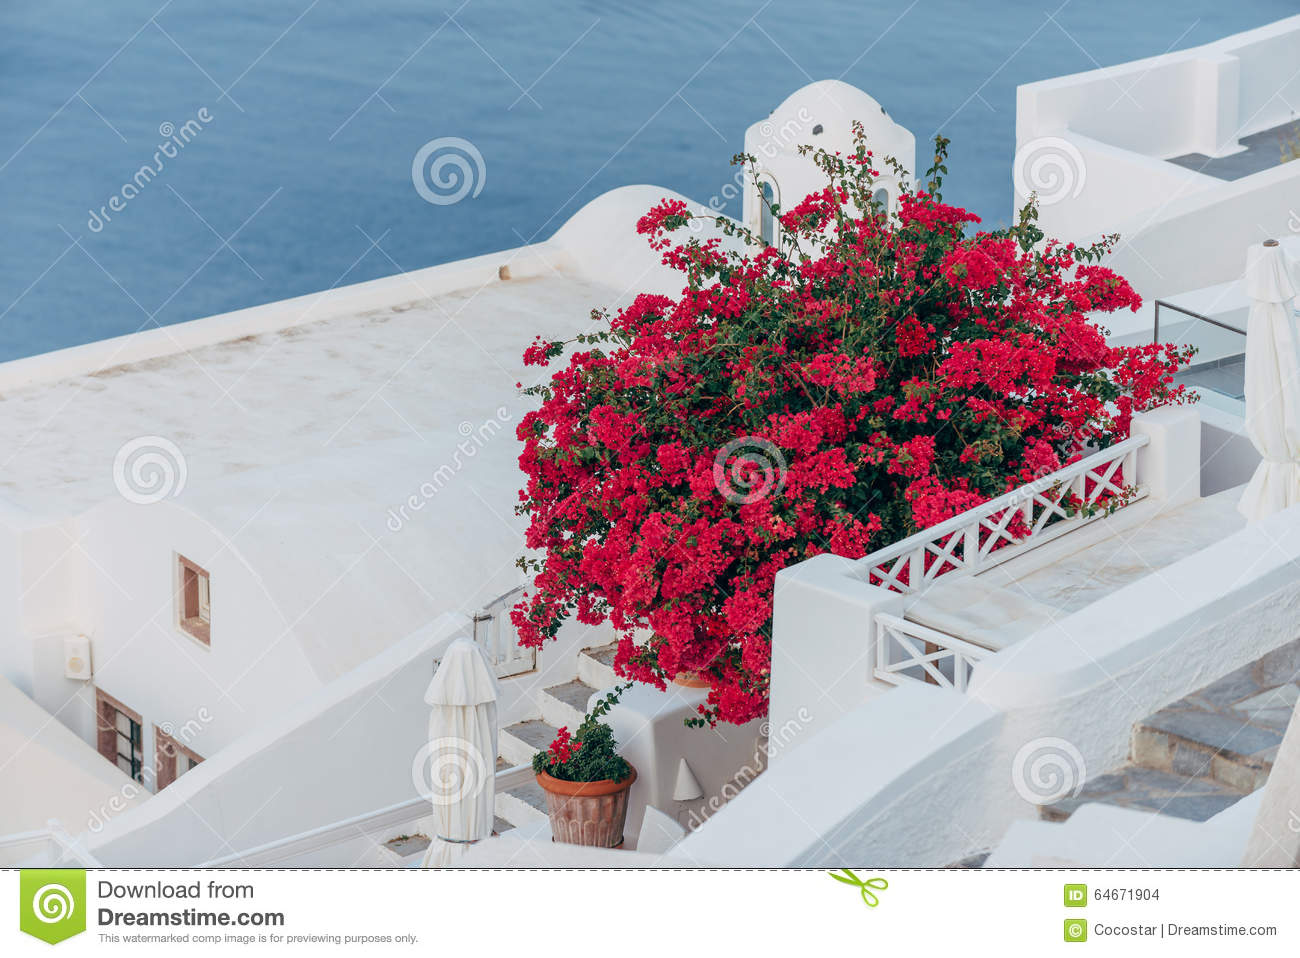 93505aac5382 Red flowers in Santorini stock photo. Image of thira - 64671904